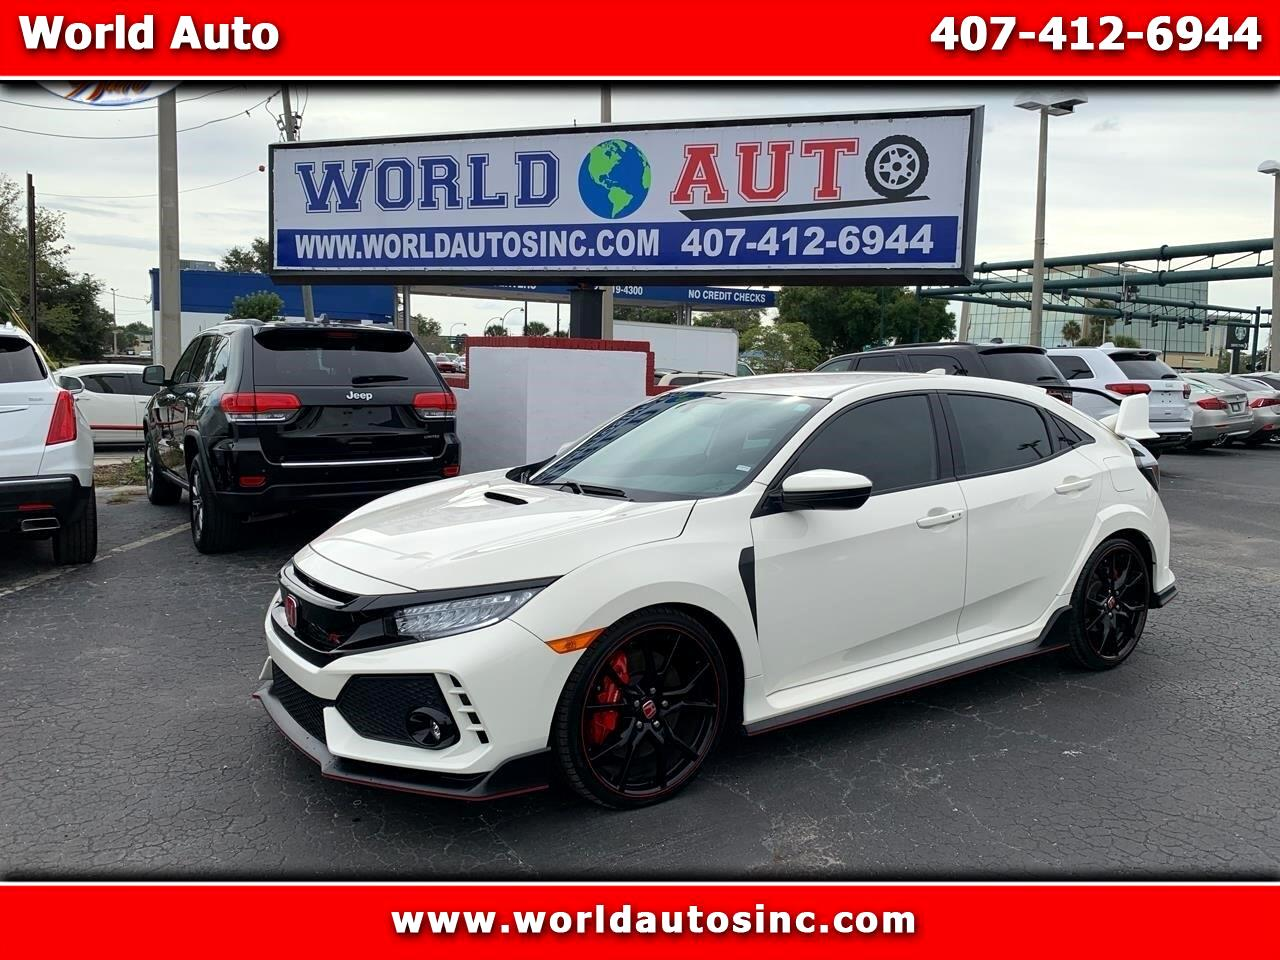 2017 Honda Civic Type R 6M